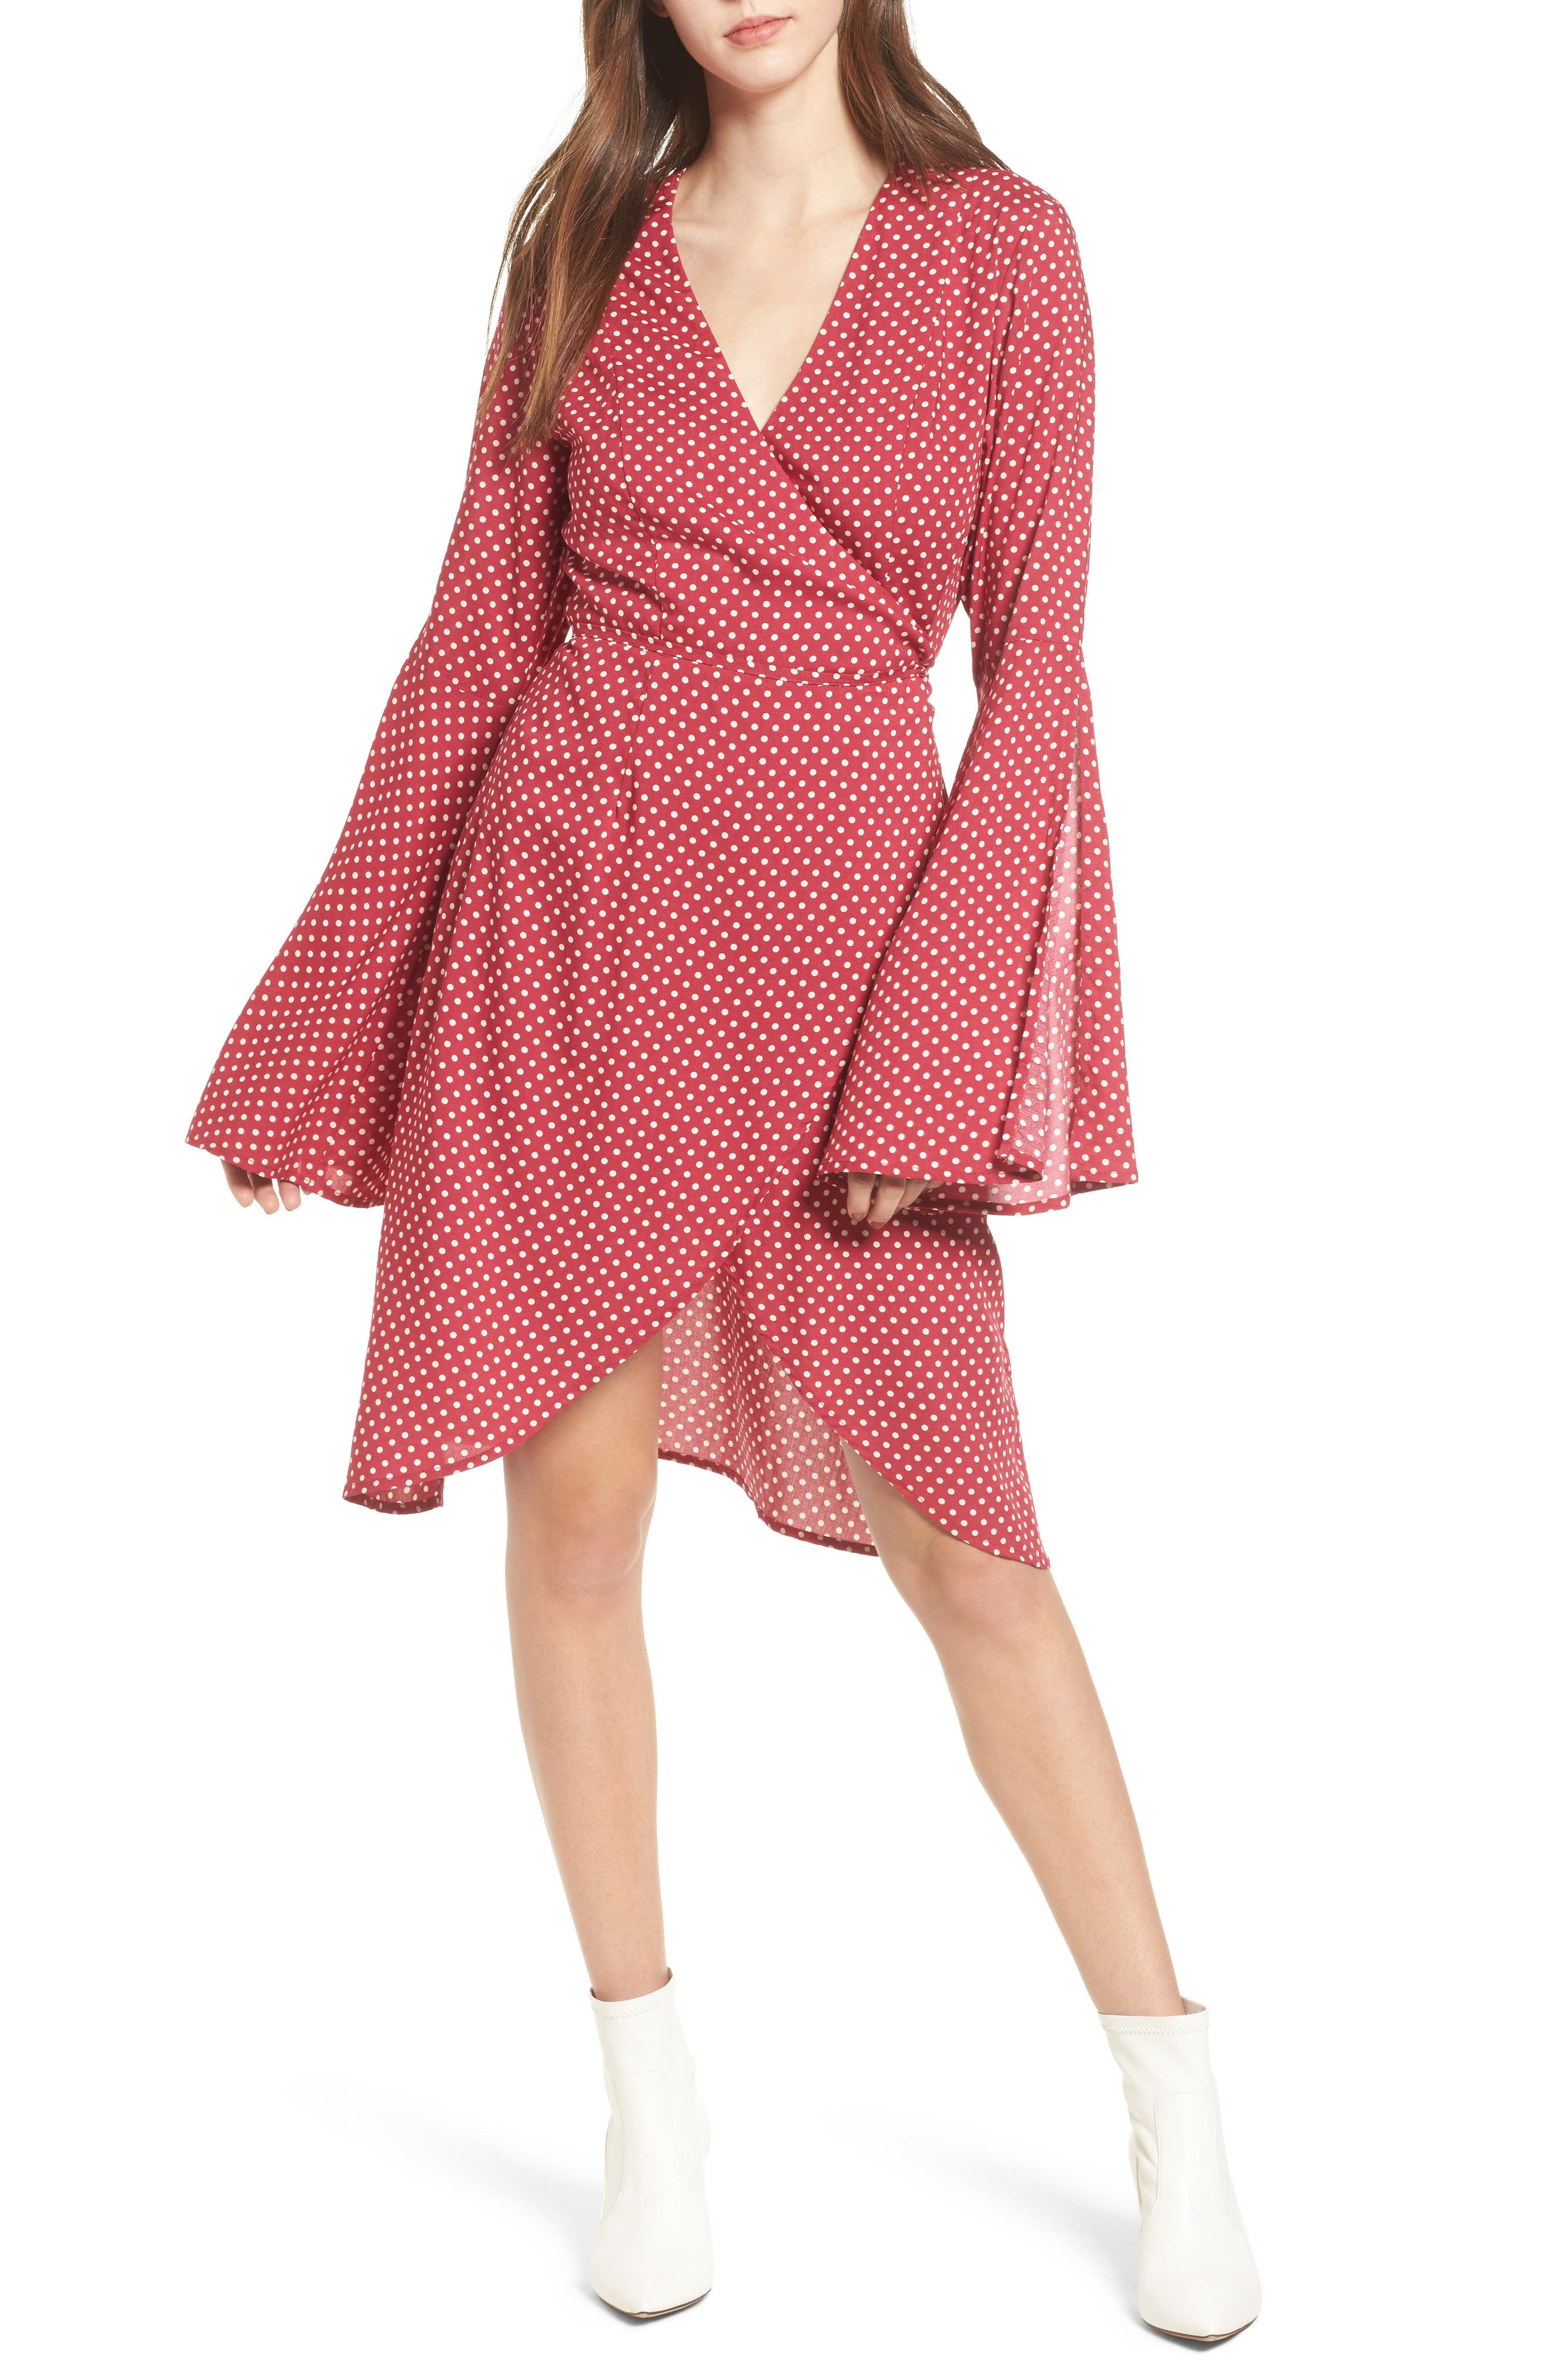 Fearless Polka Dot Wrap Dress,                         Main,                         color, Multi Red